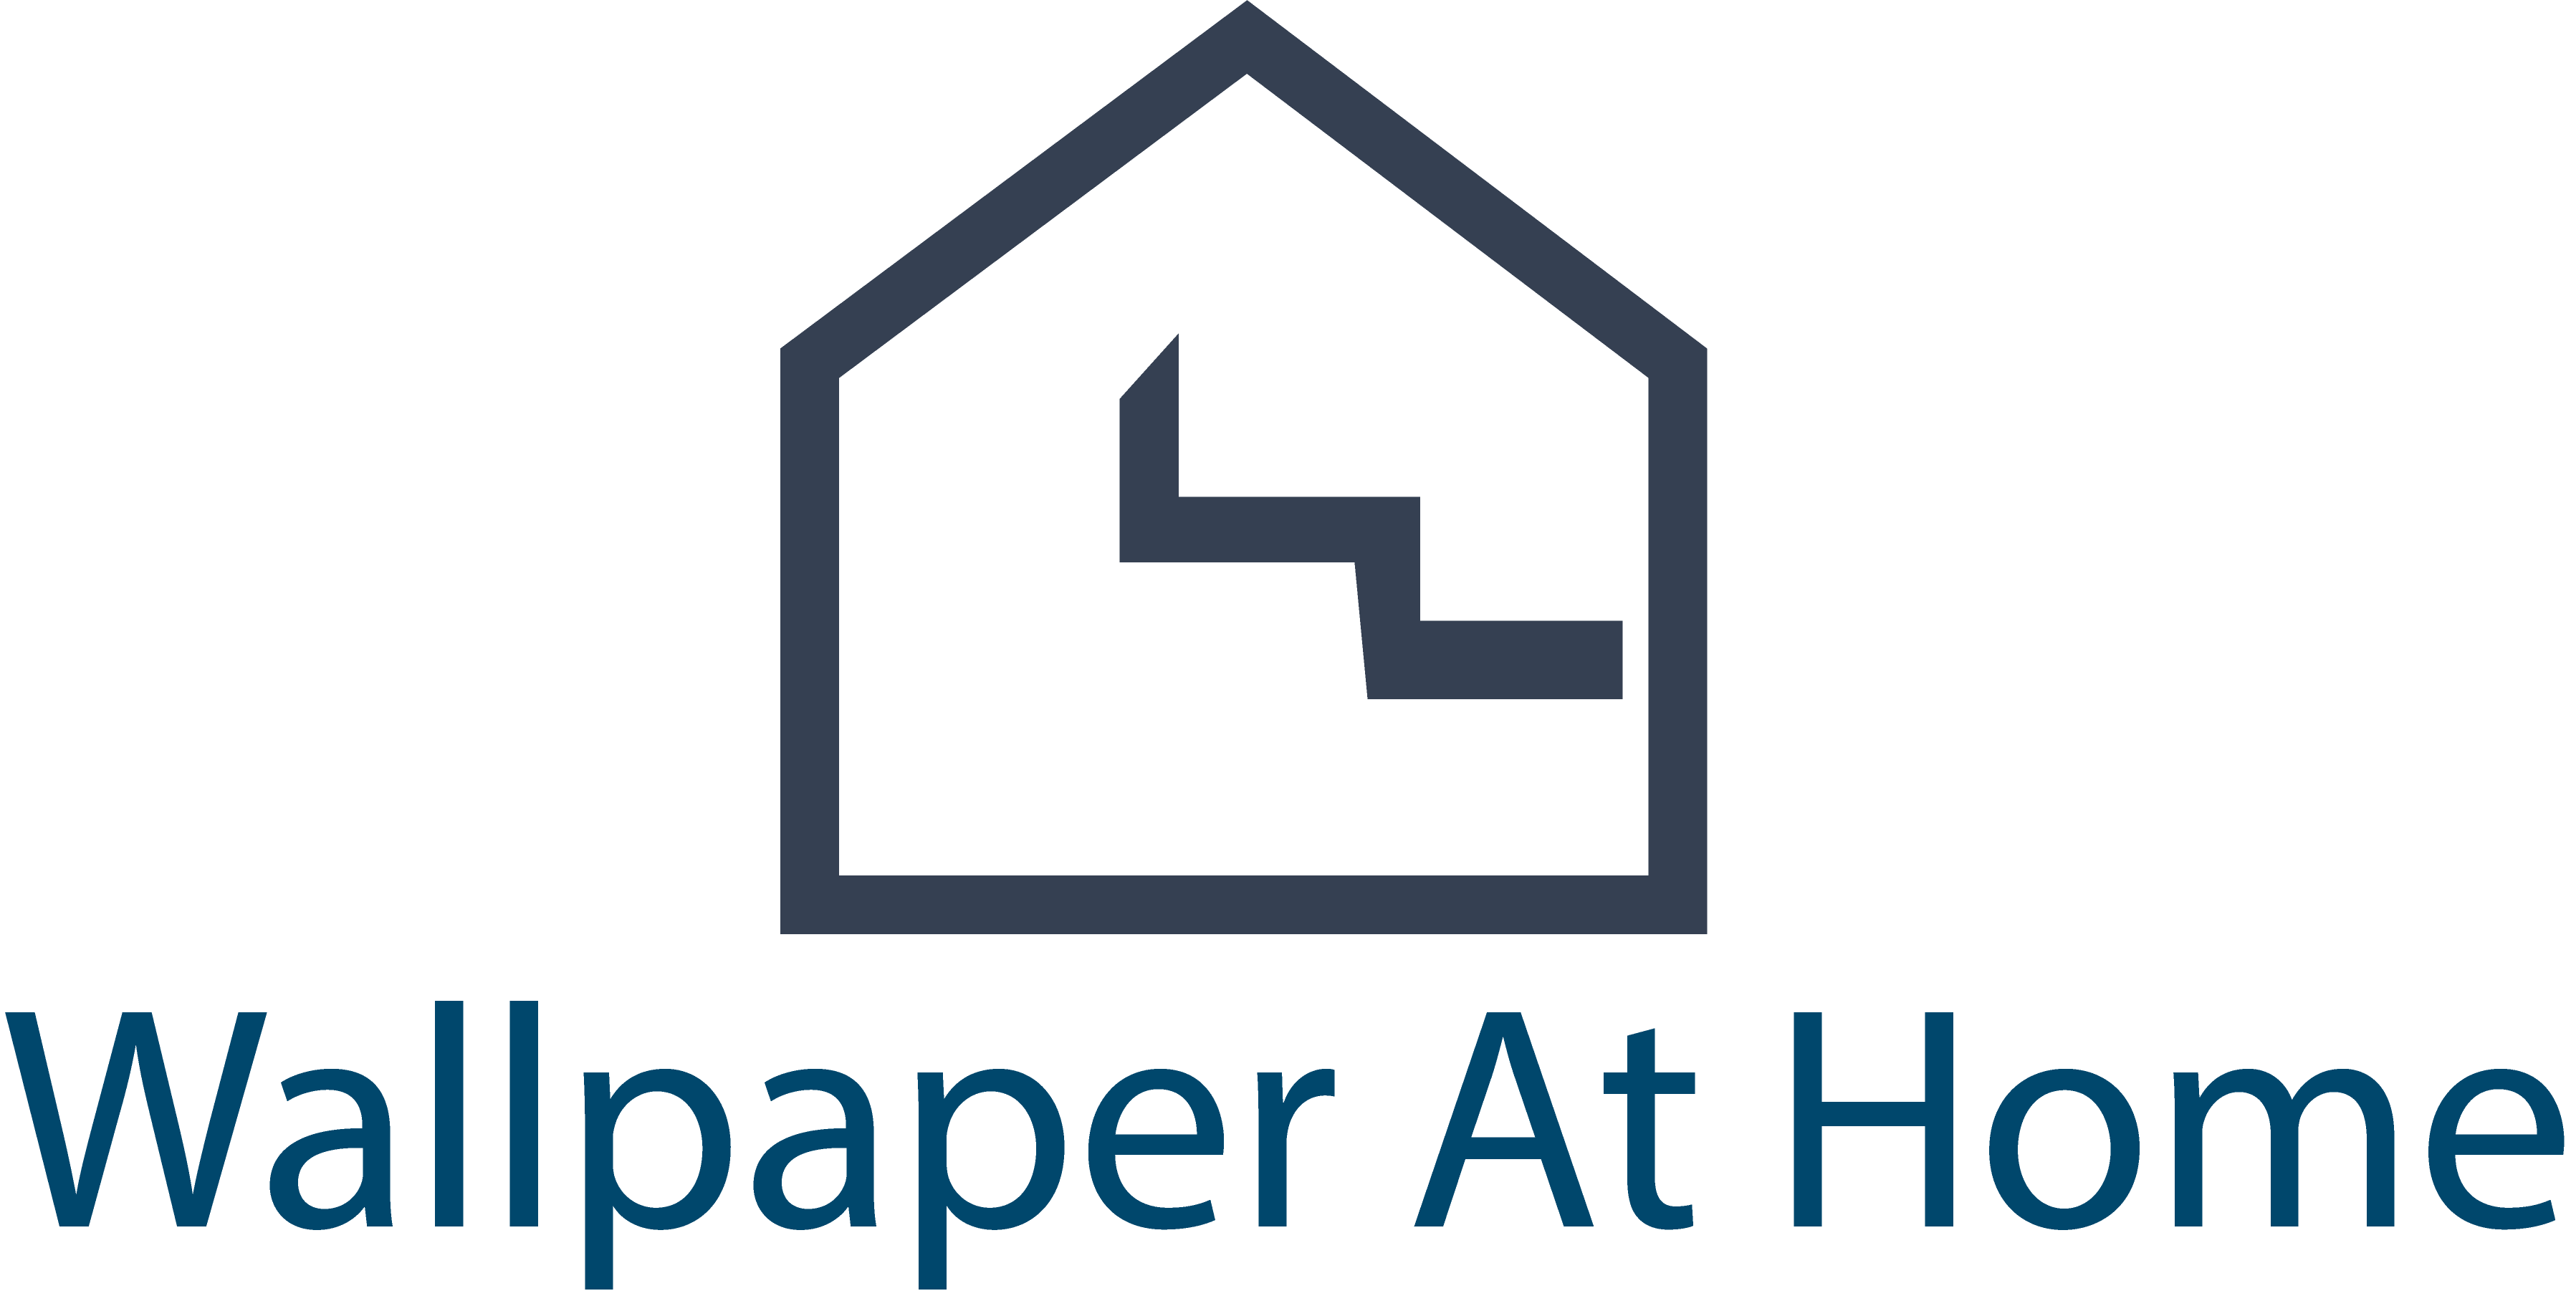 wallpaperathome Logo